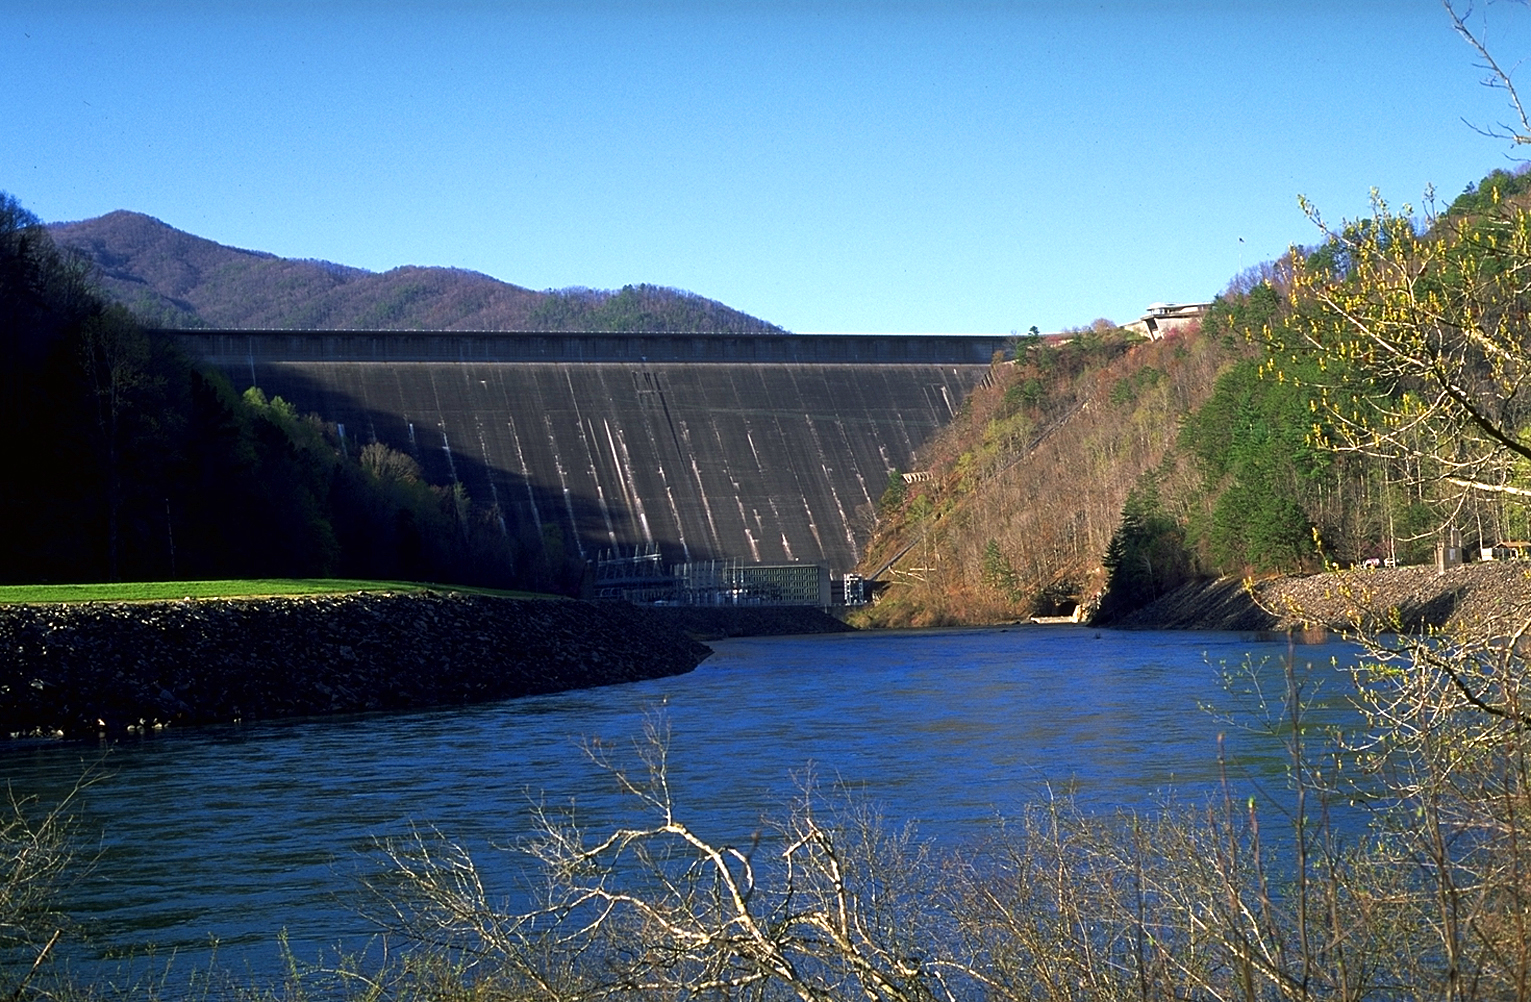 100% free online dating in fontana dam Fontana dam, nc named after the massive lake and dam located in the western part of the state and within the smoky mountain national park.